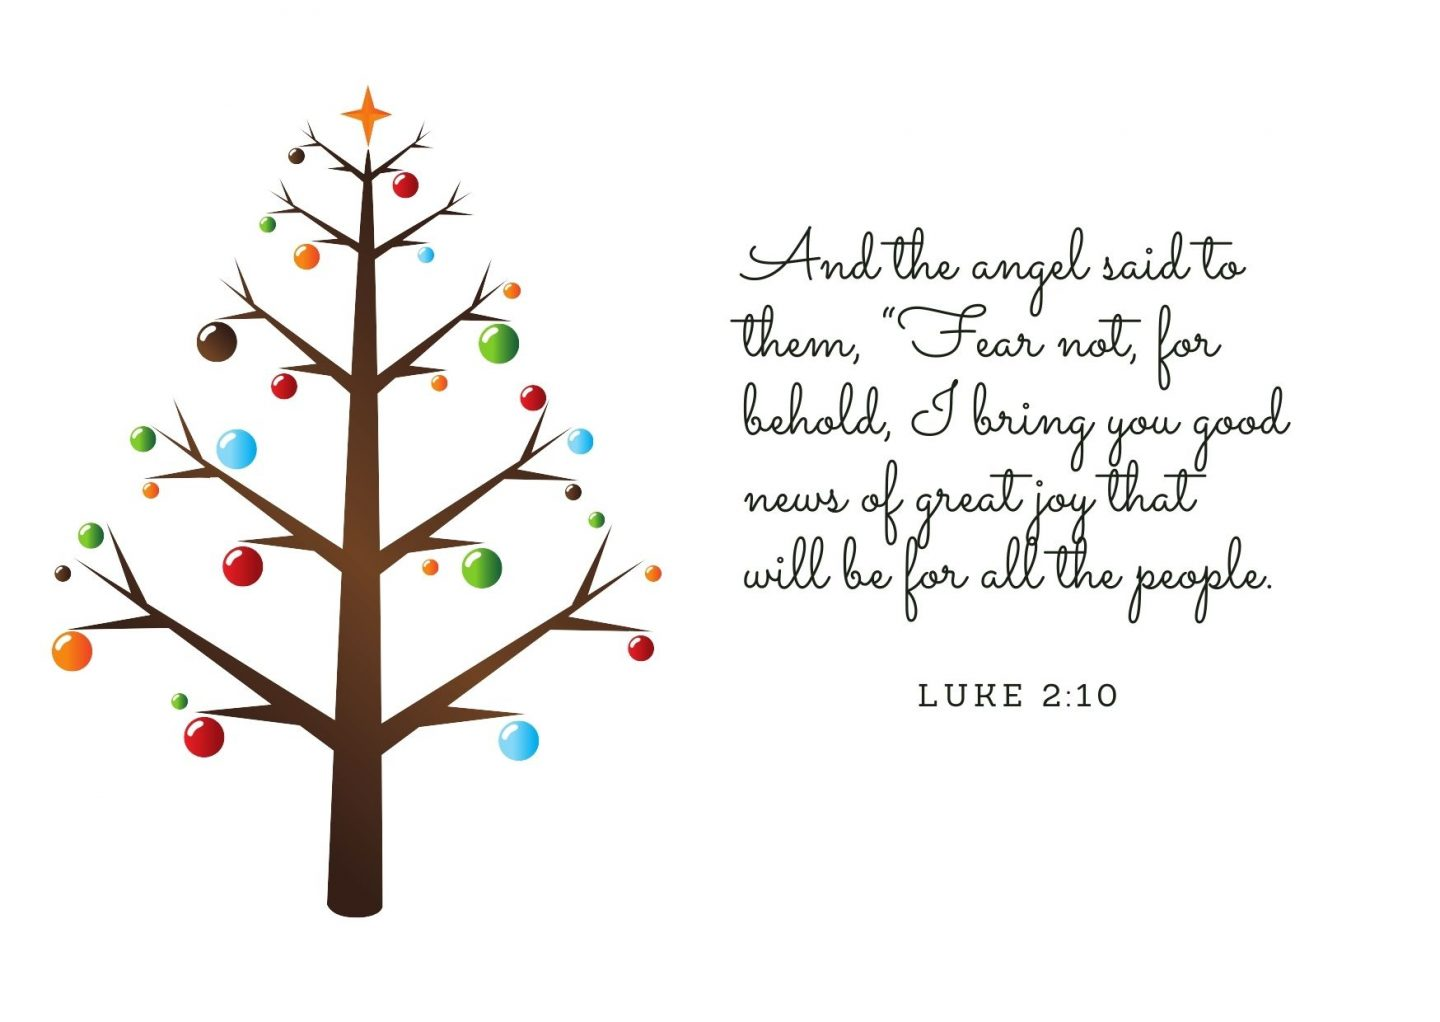 """And the angel said to them, """"Fear not, for behold, I bring you good news of great joy that will be for all the people. Luke 2:10"""